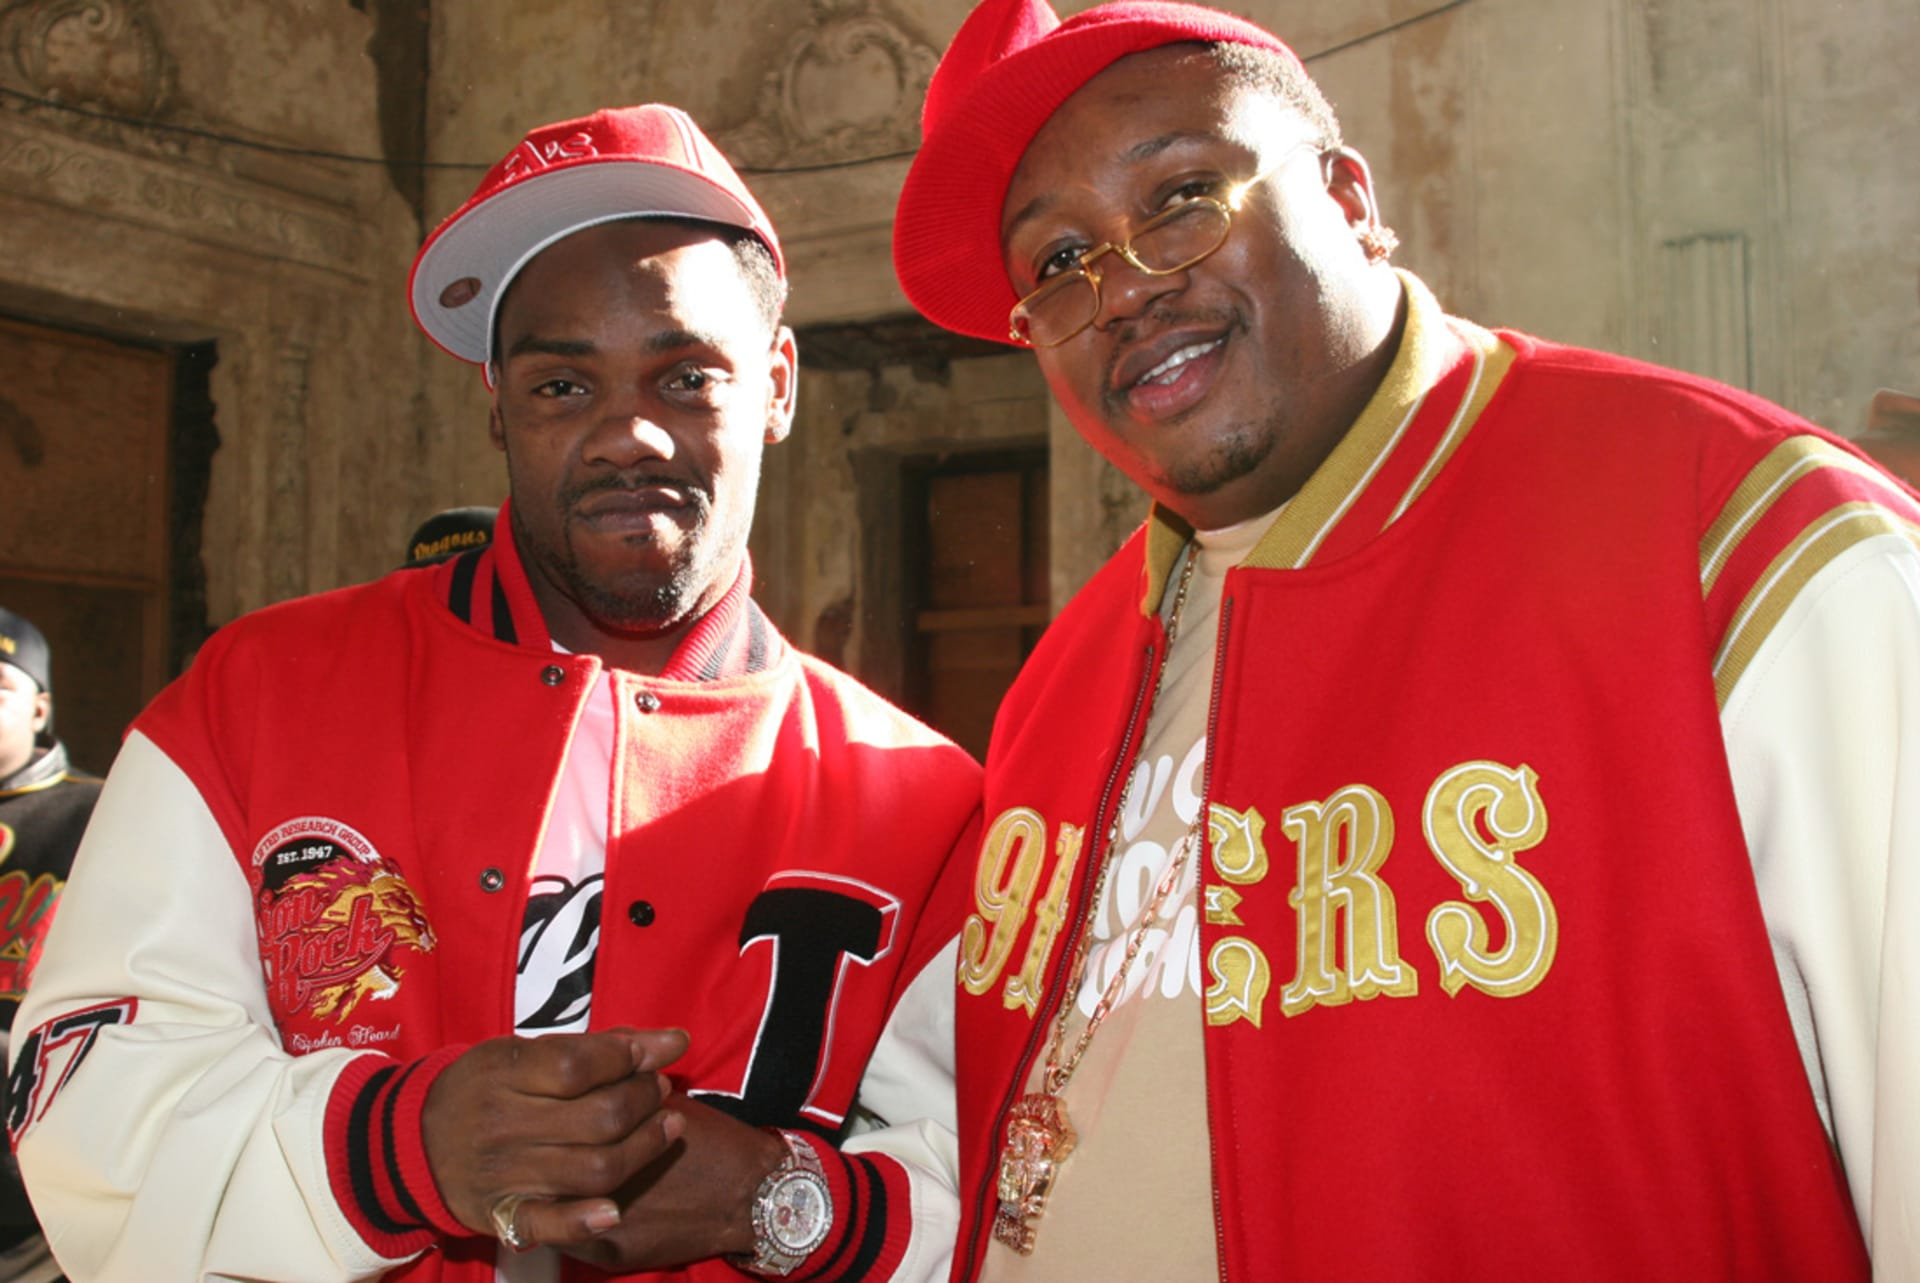 """Keak Da Sneak and E 40 on the set of the 2006 music video shoot for """"Tell Me When To Go"""" in Oakland, Calif."""